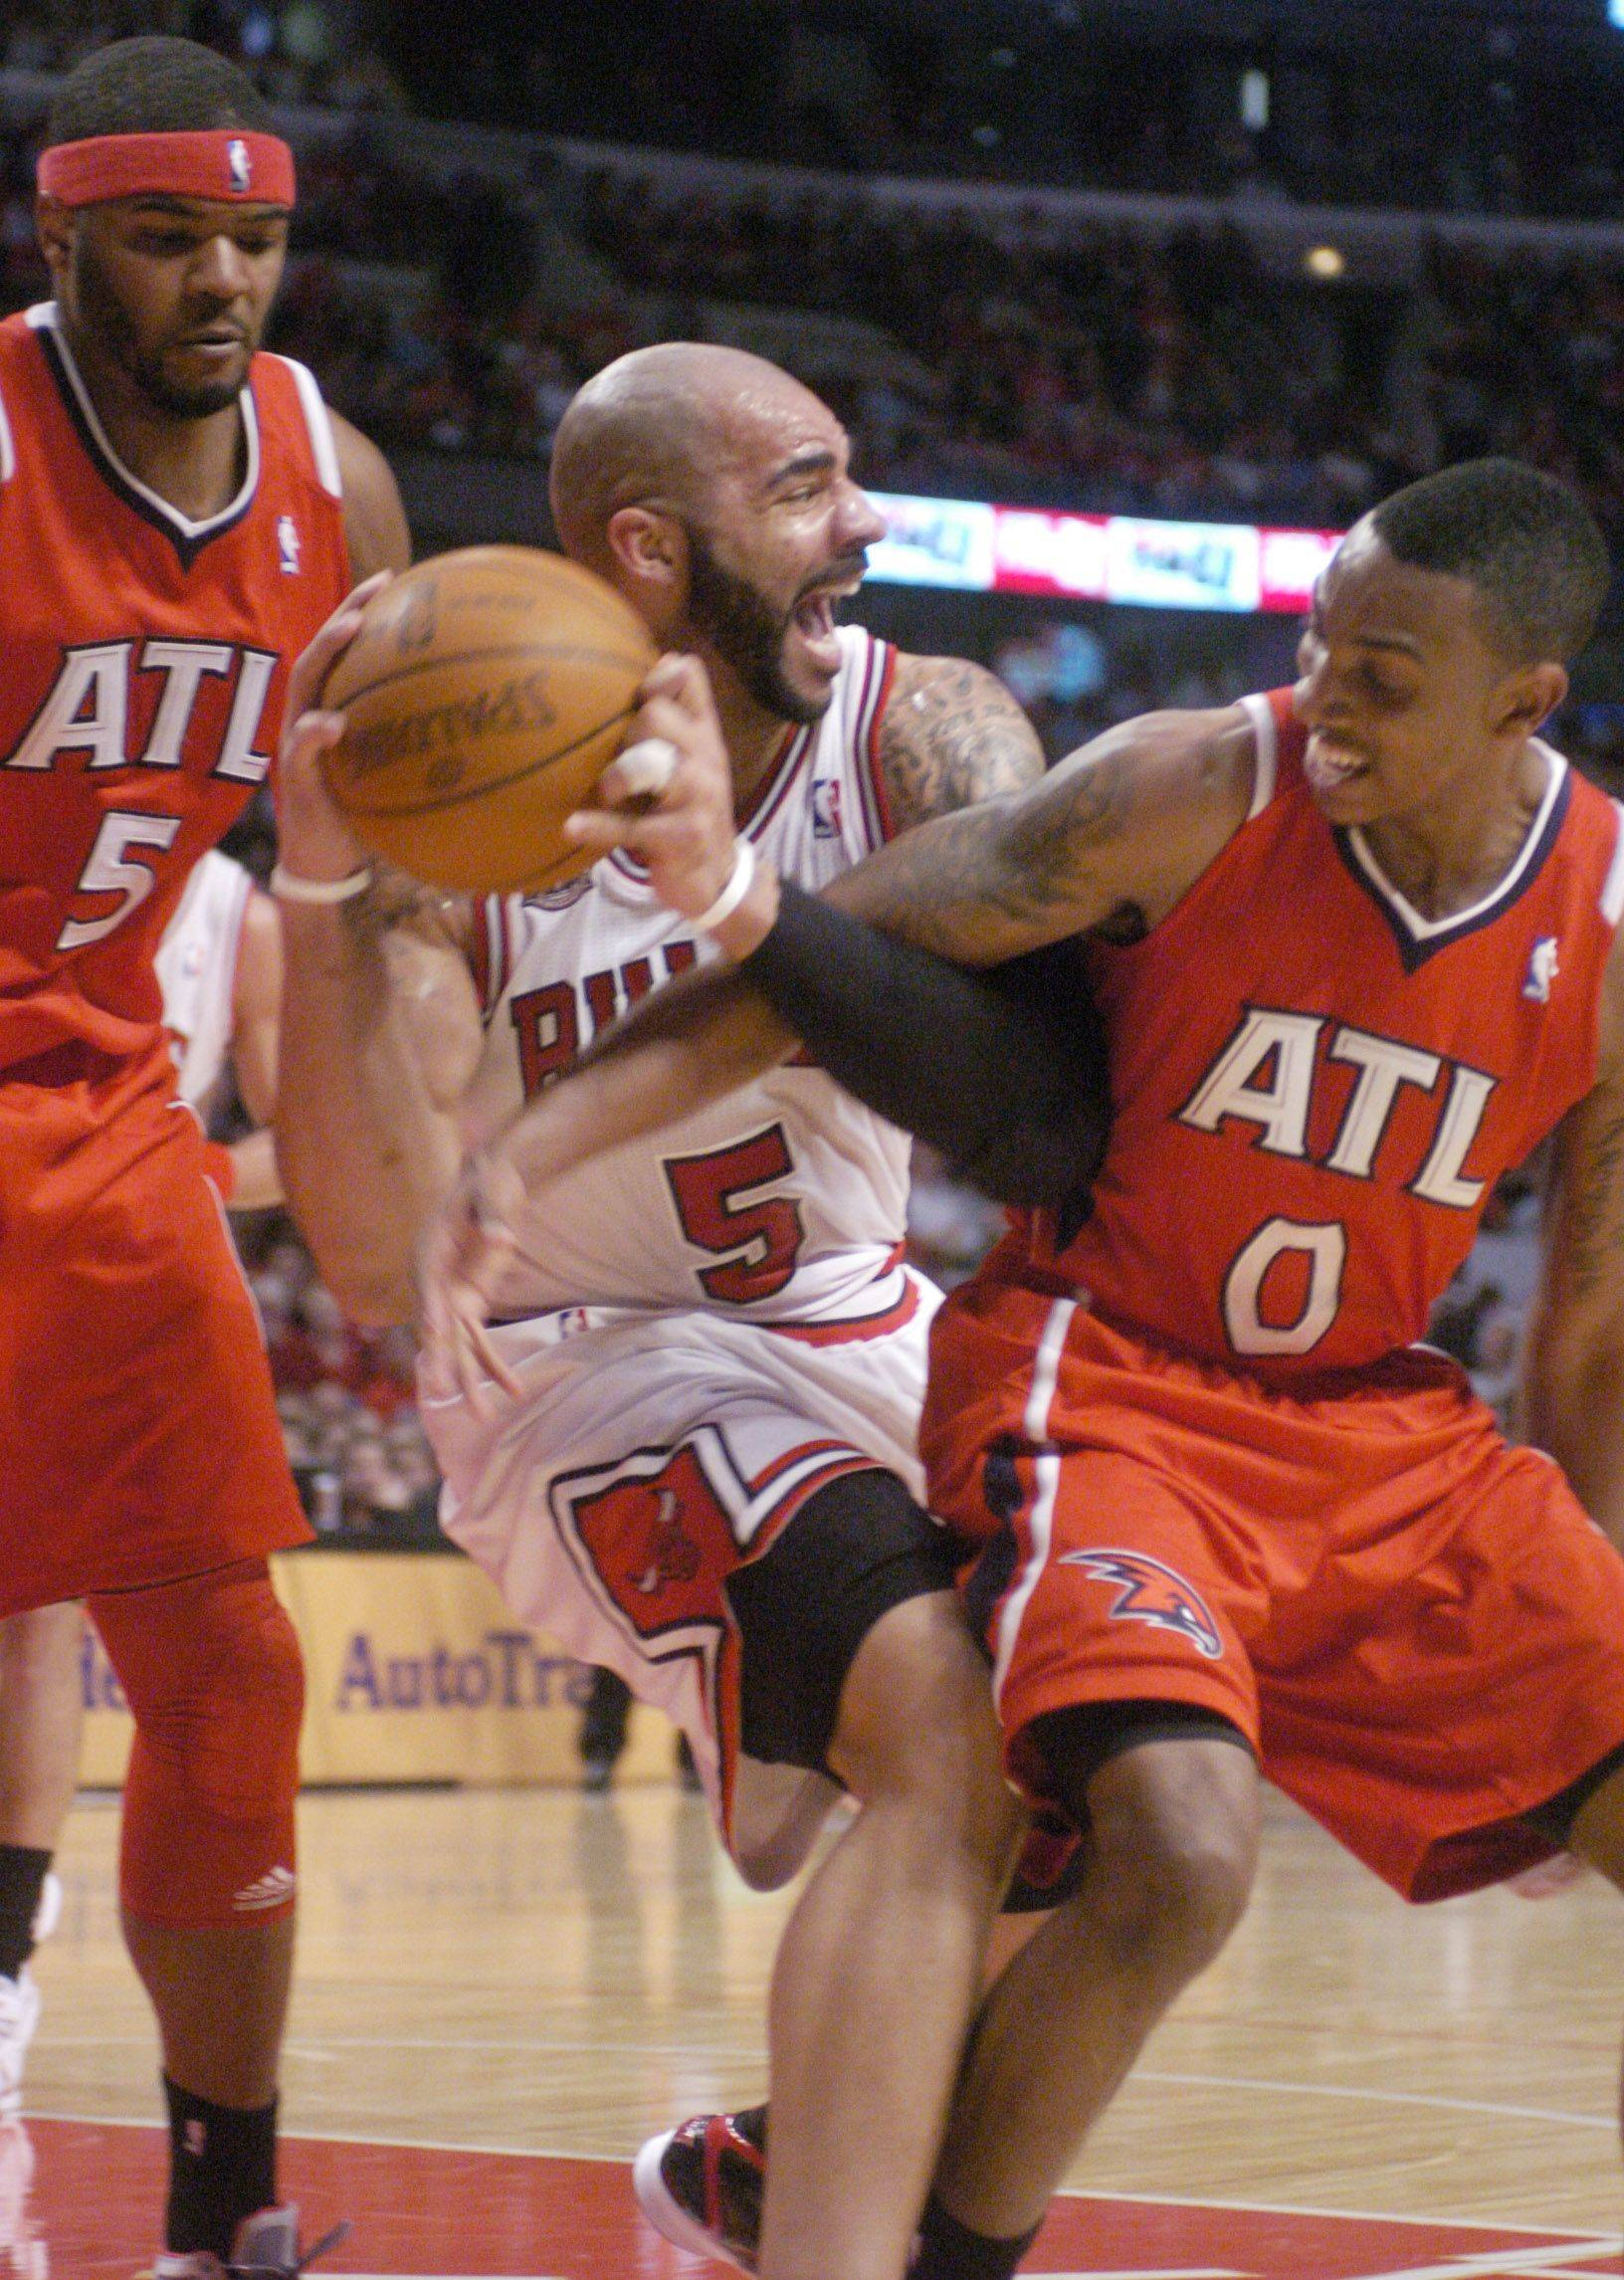 Carlos Boozer gets fouled by Jeff Teague of the Hawks, right, as Josh Smith provides coverage Monday.